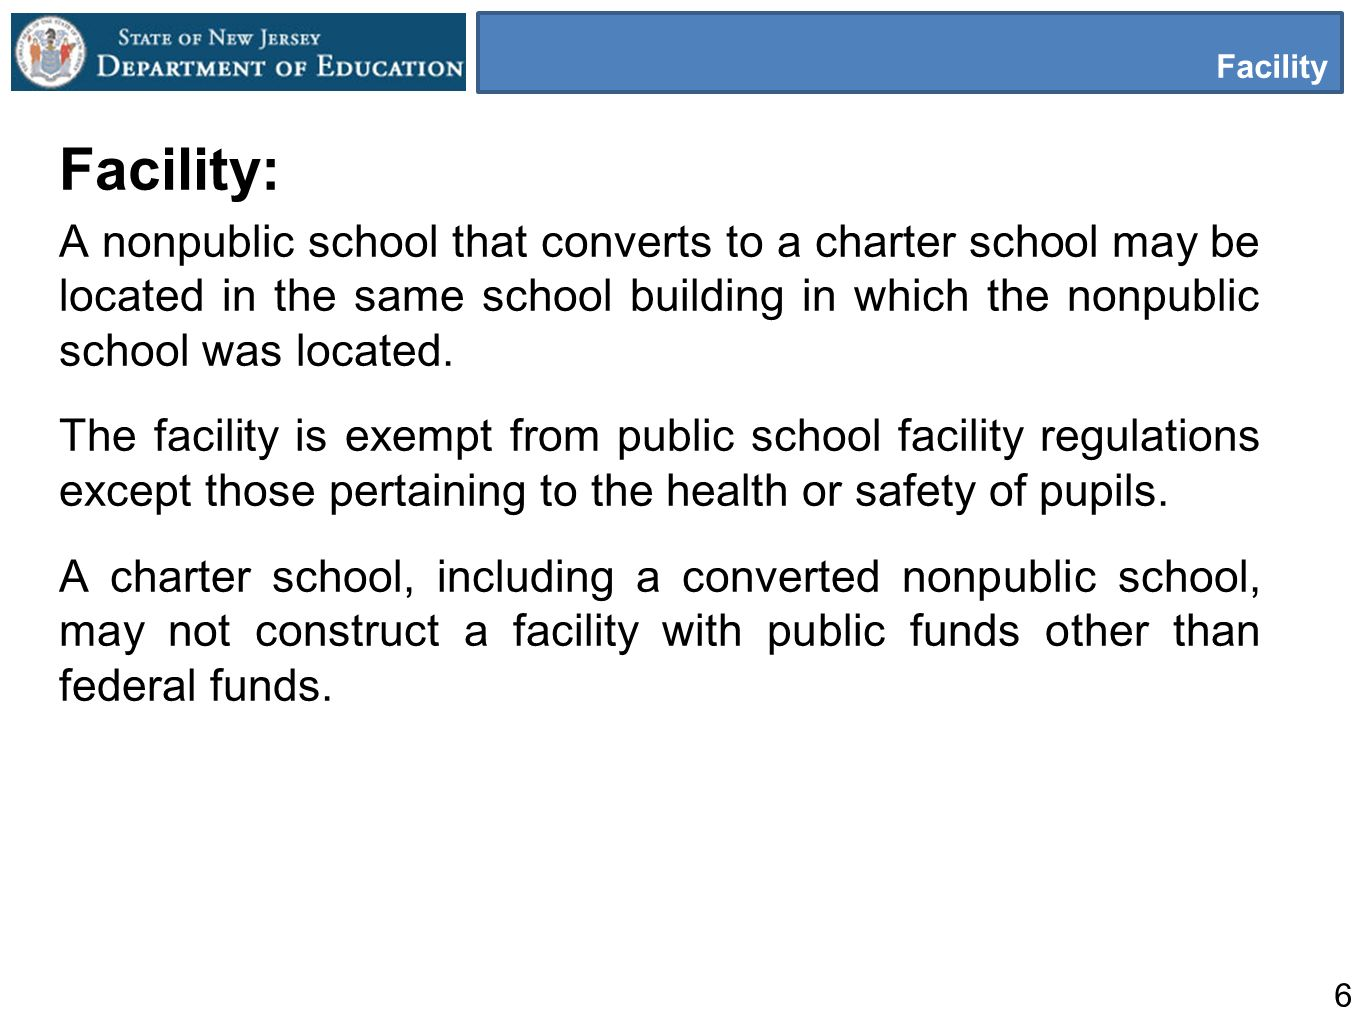 6 Facility Facility: A nonpublic school that converts to a charter school may be located in the same school building in which the nonpublic school was located.